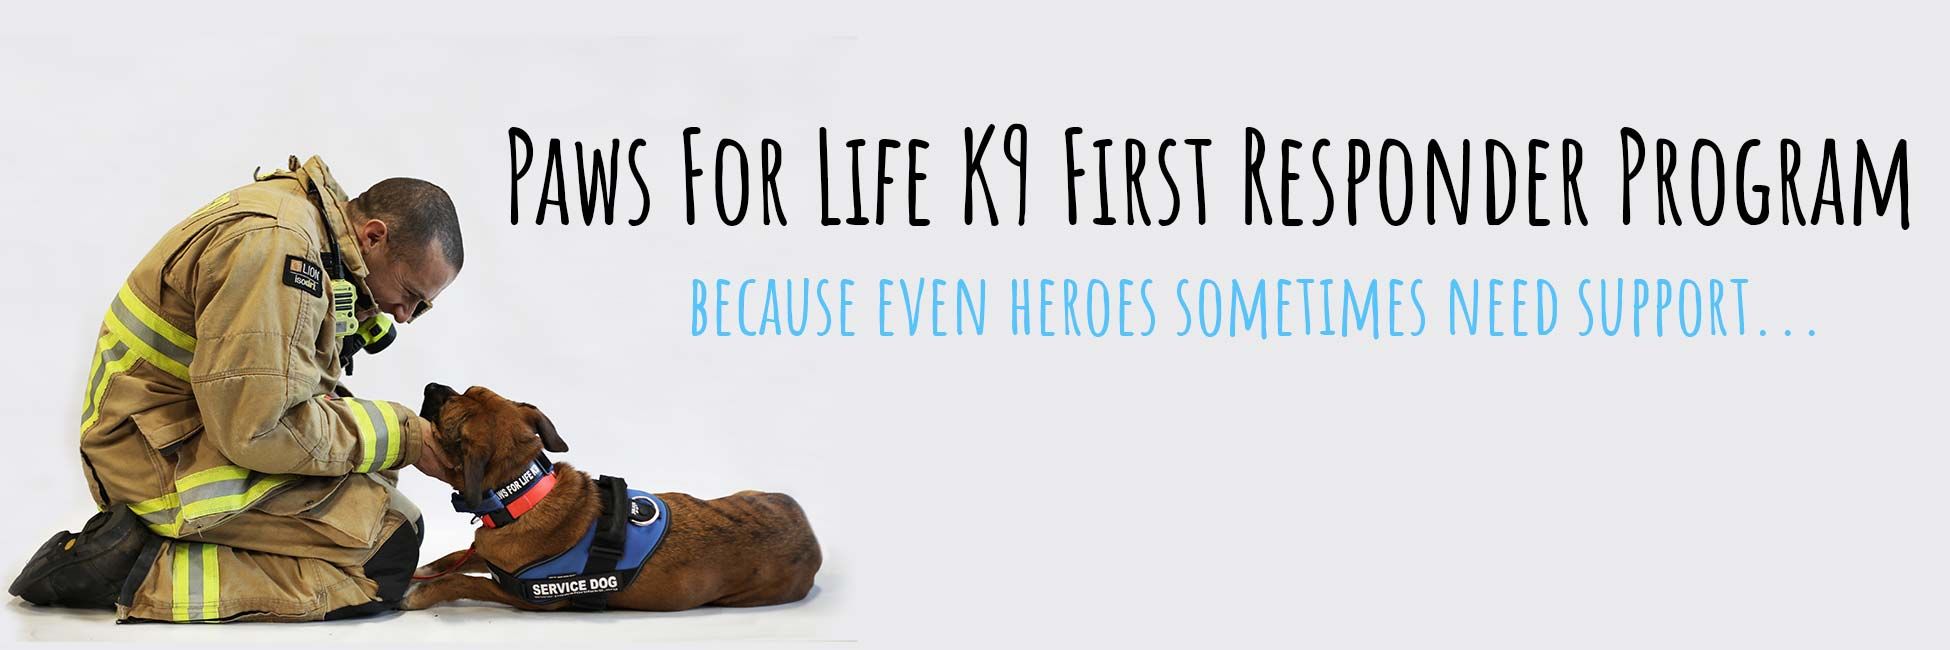 Paws For Life K9 First Responders program